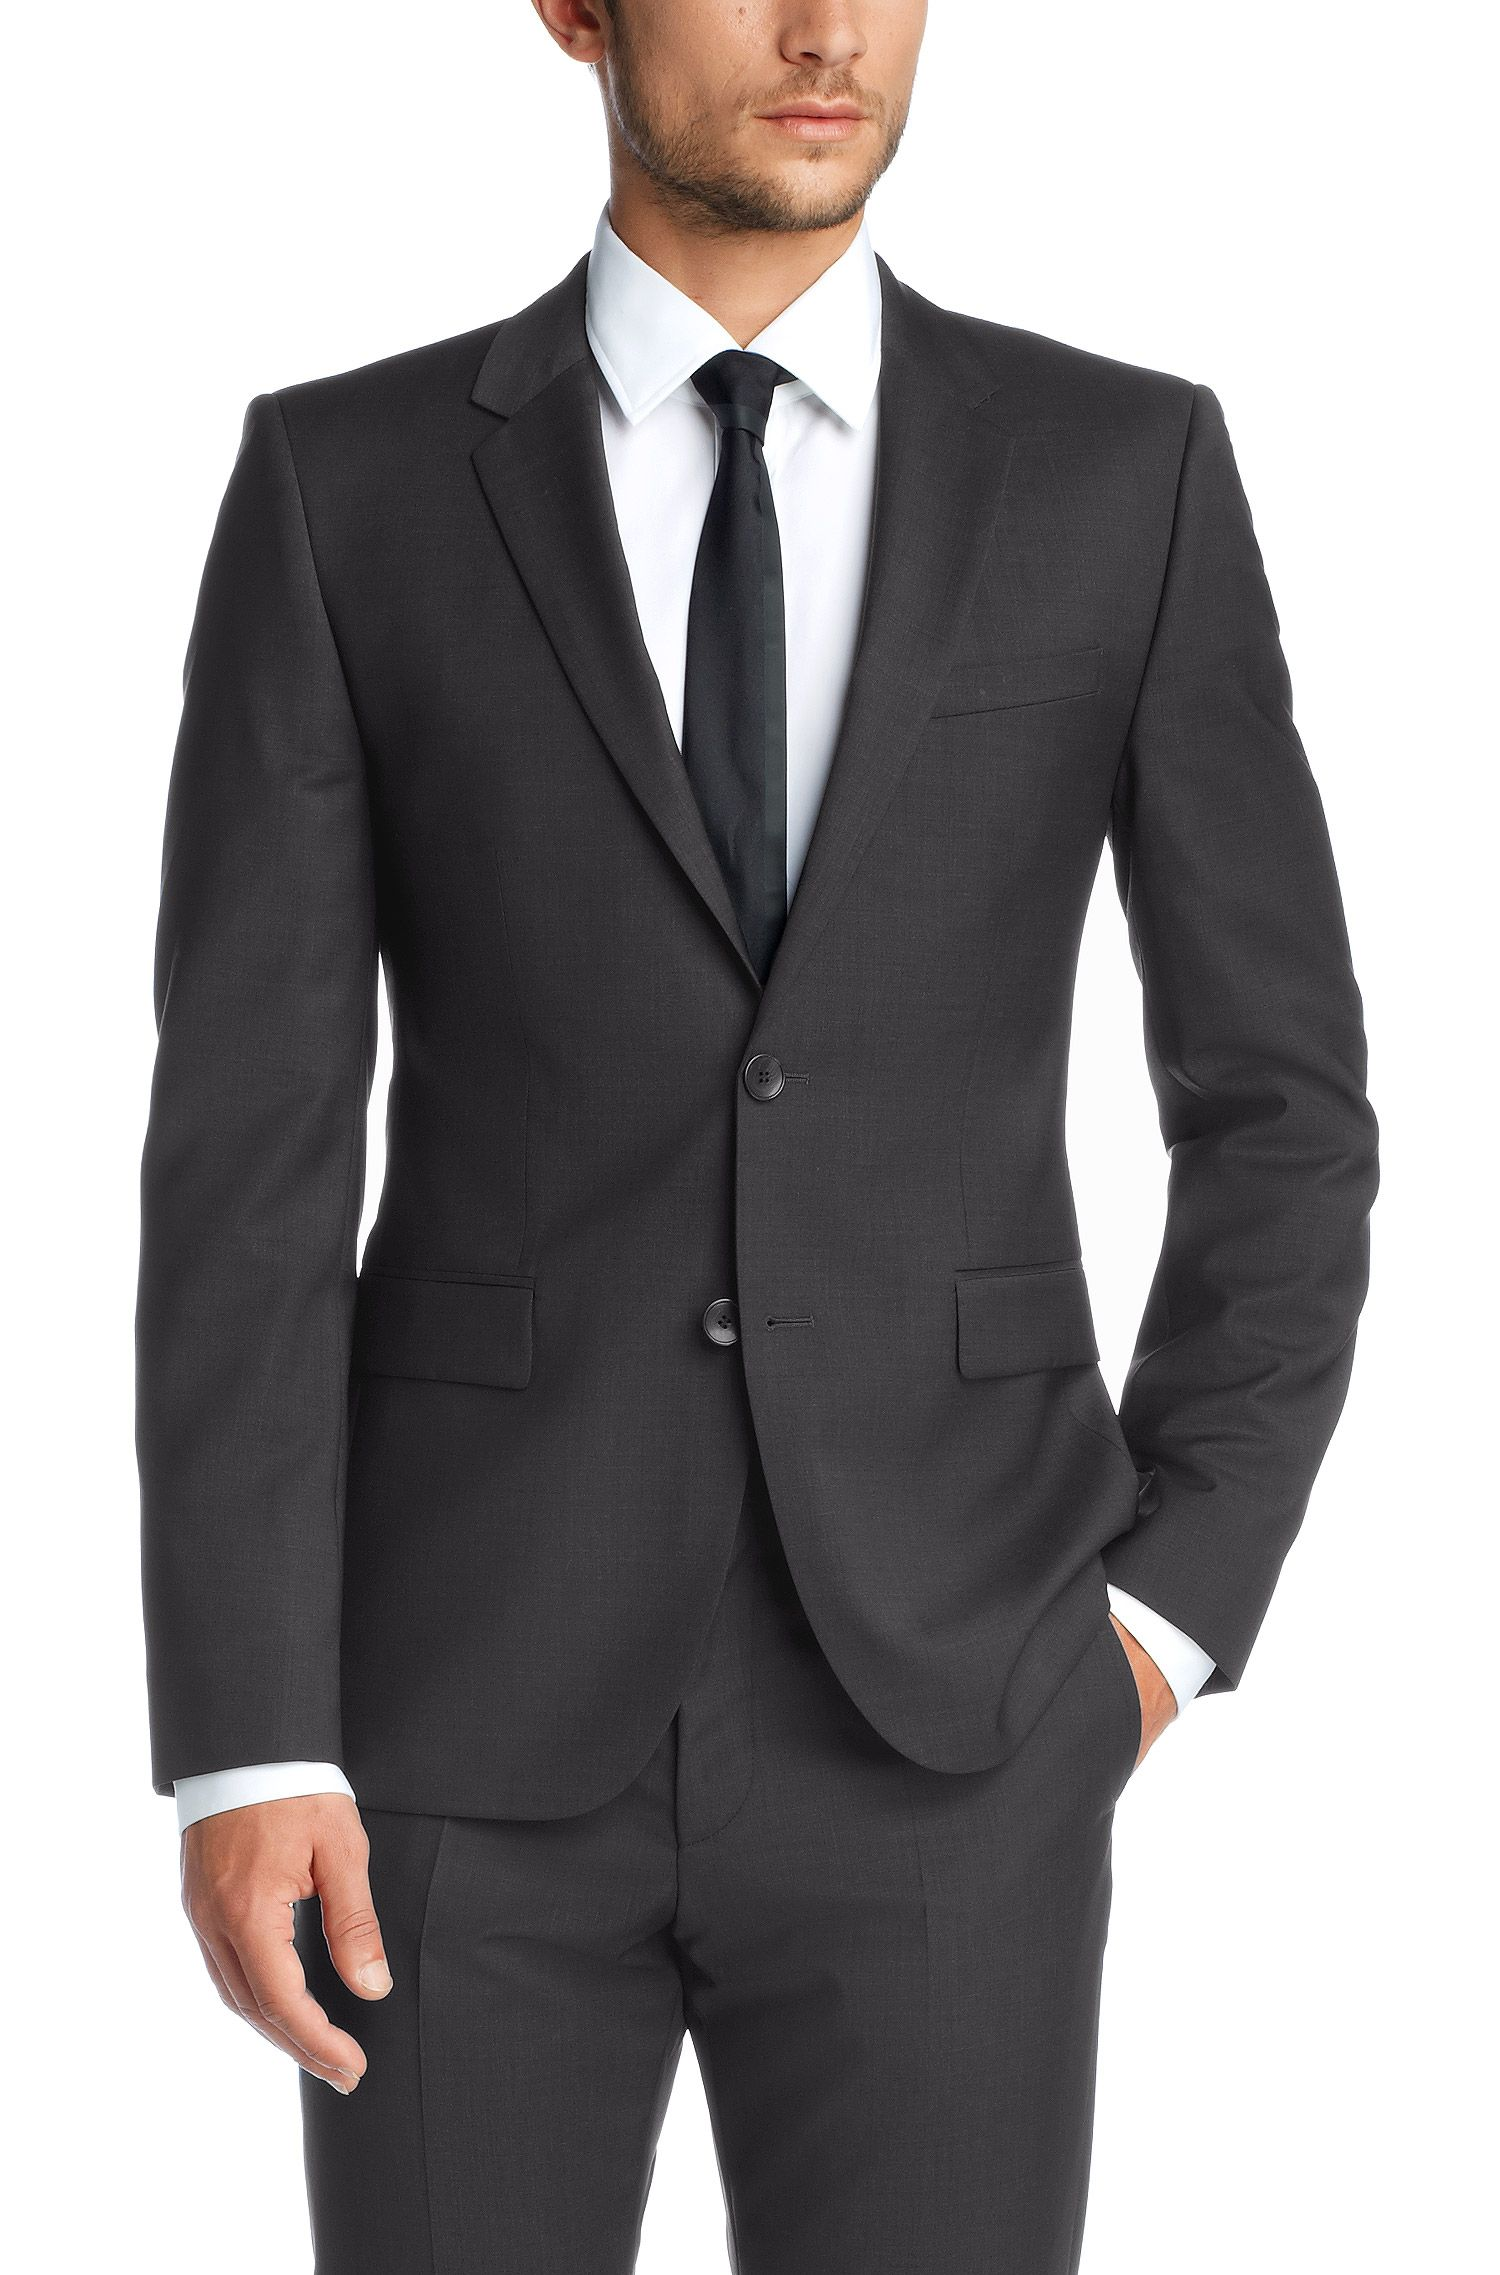 Veston Slim Fit en laine vierge, AerinS